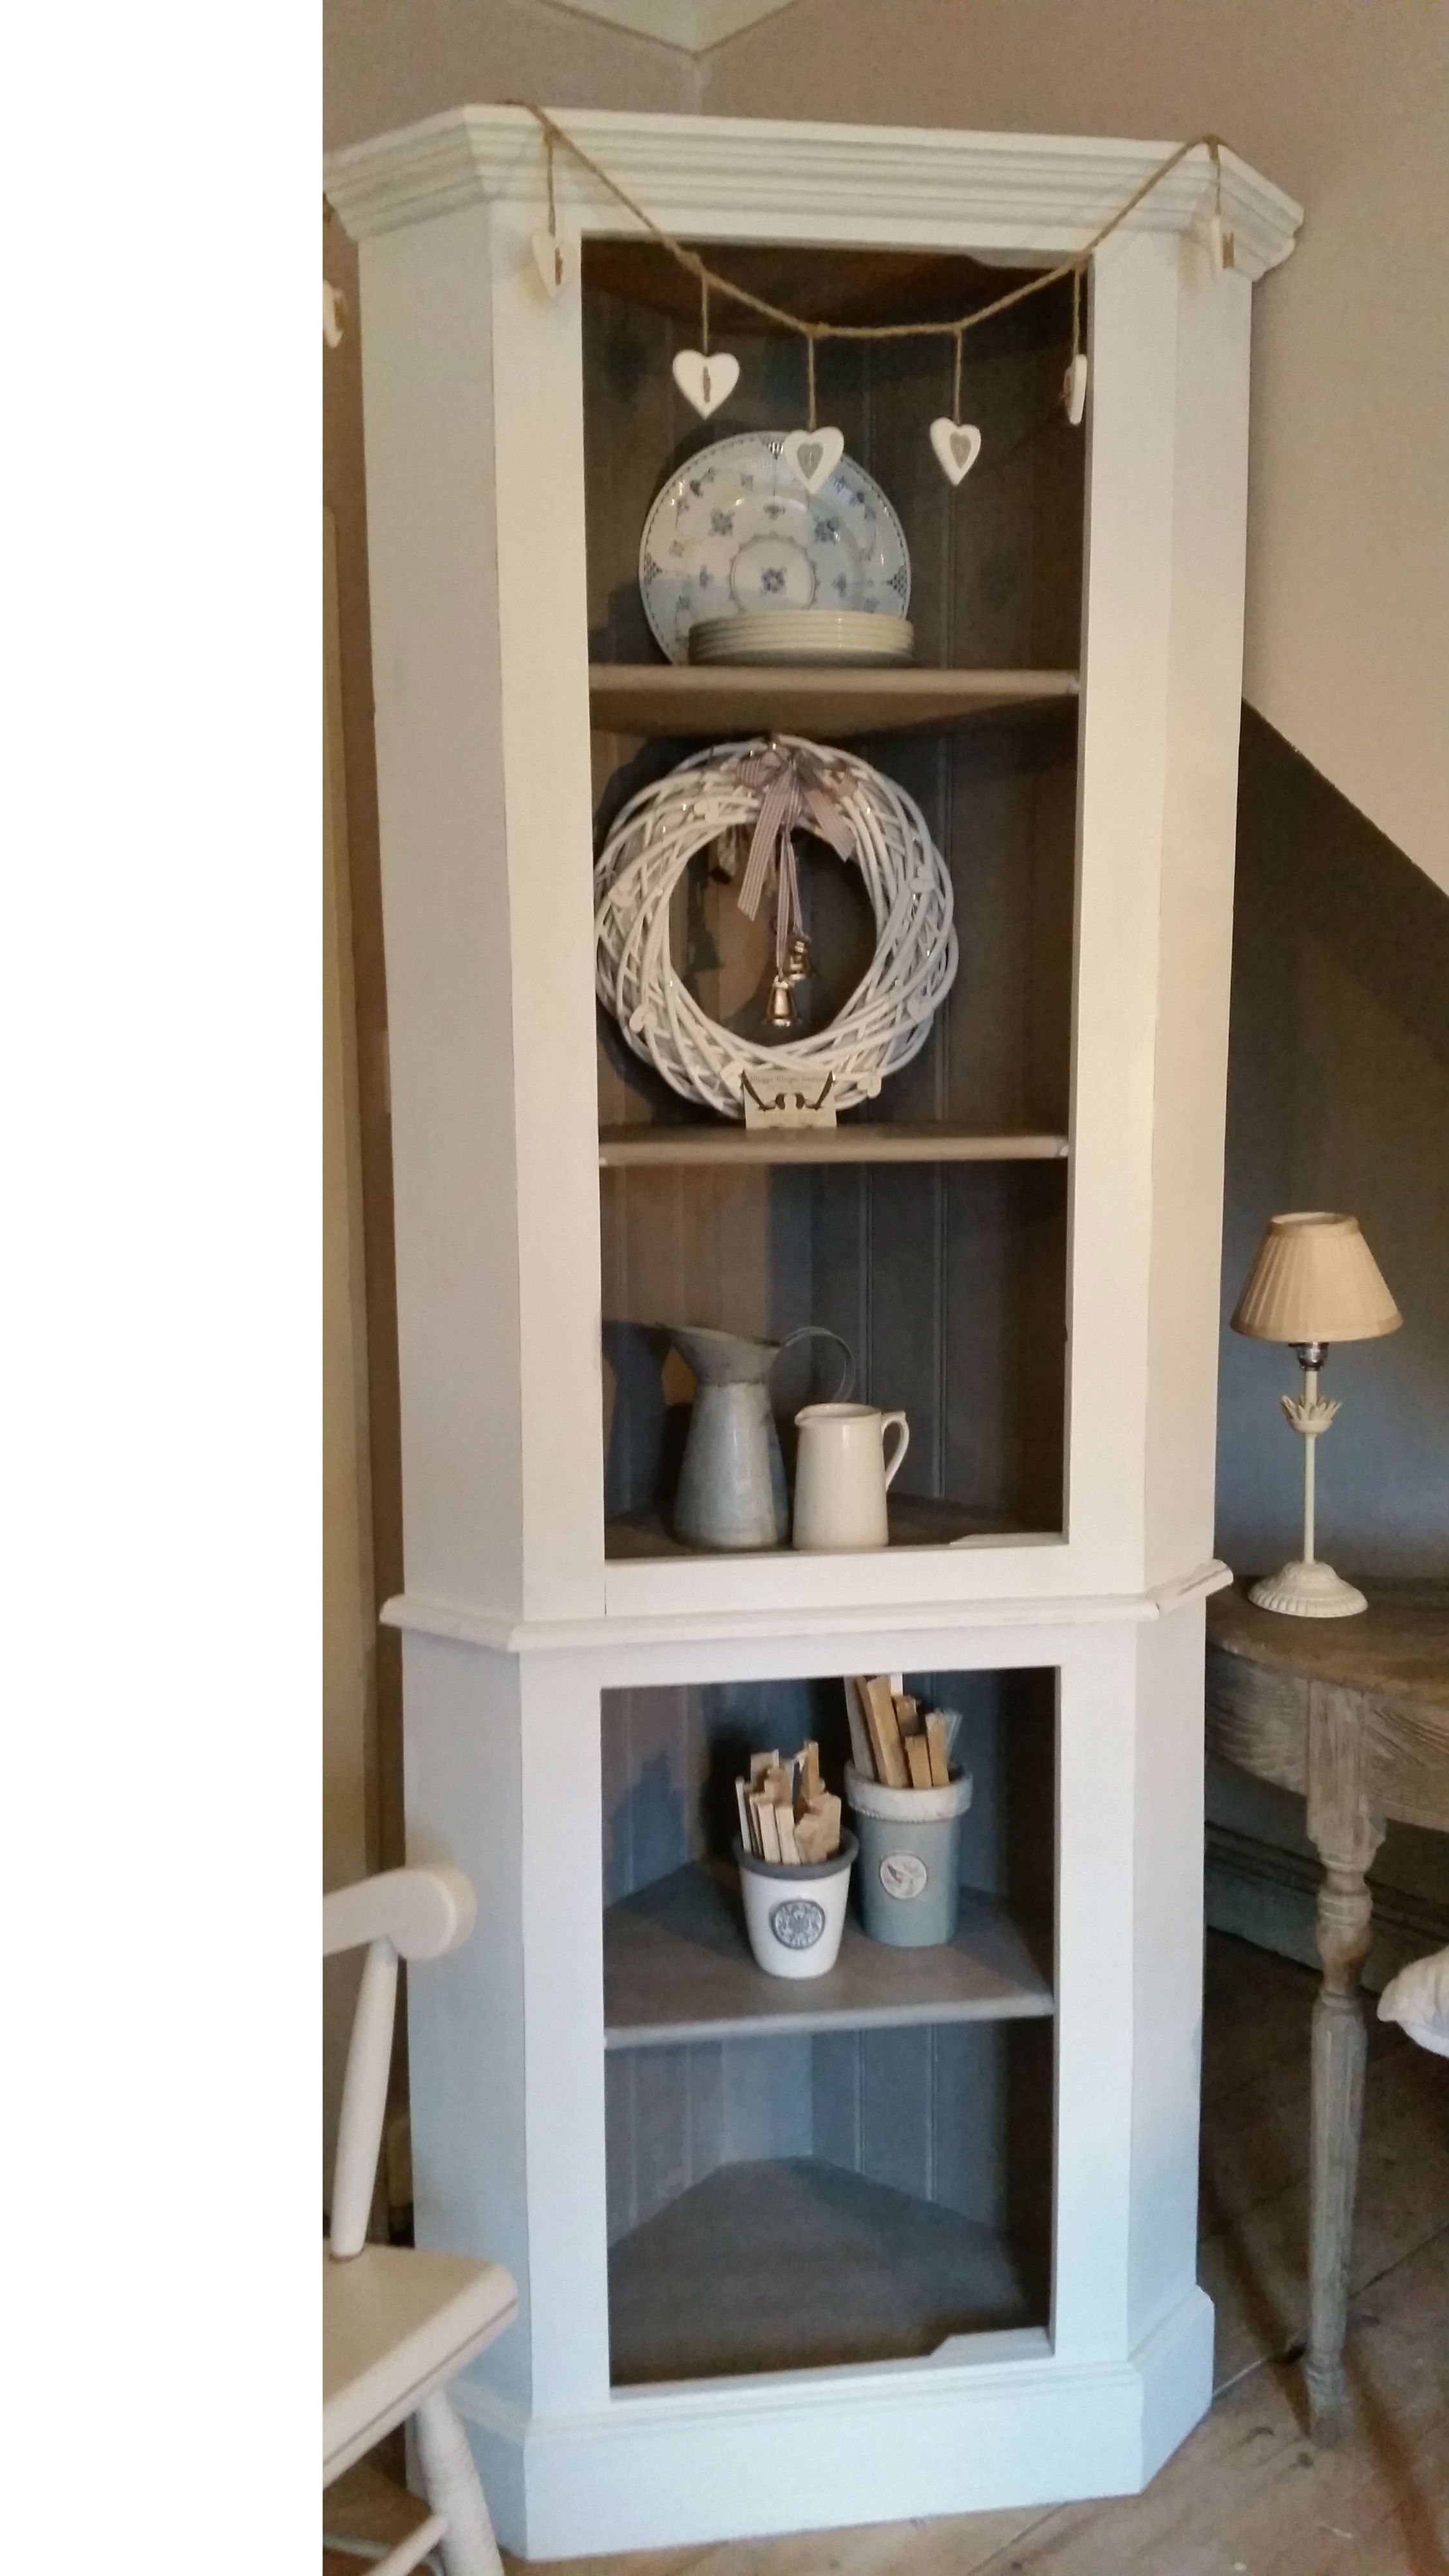 Solid Pine Rustic Corner Shelving Unit Painted In Annie Sloan Old White And French Linen Linenshelves House Decor Rustic Home Decor Rustic House